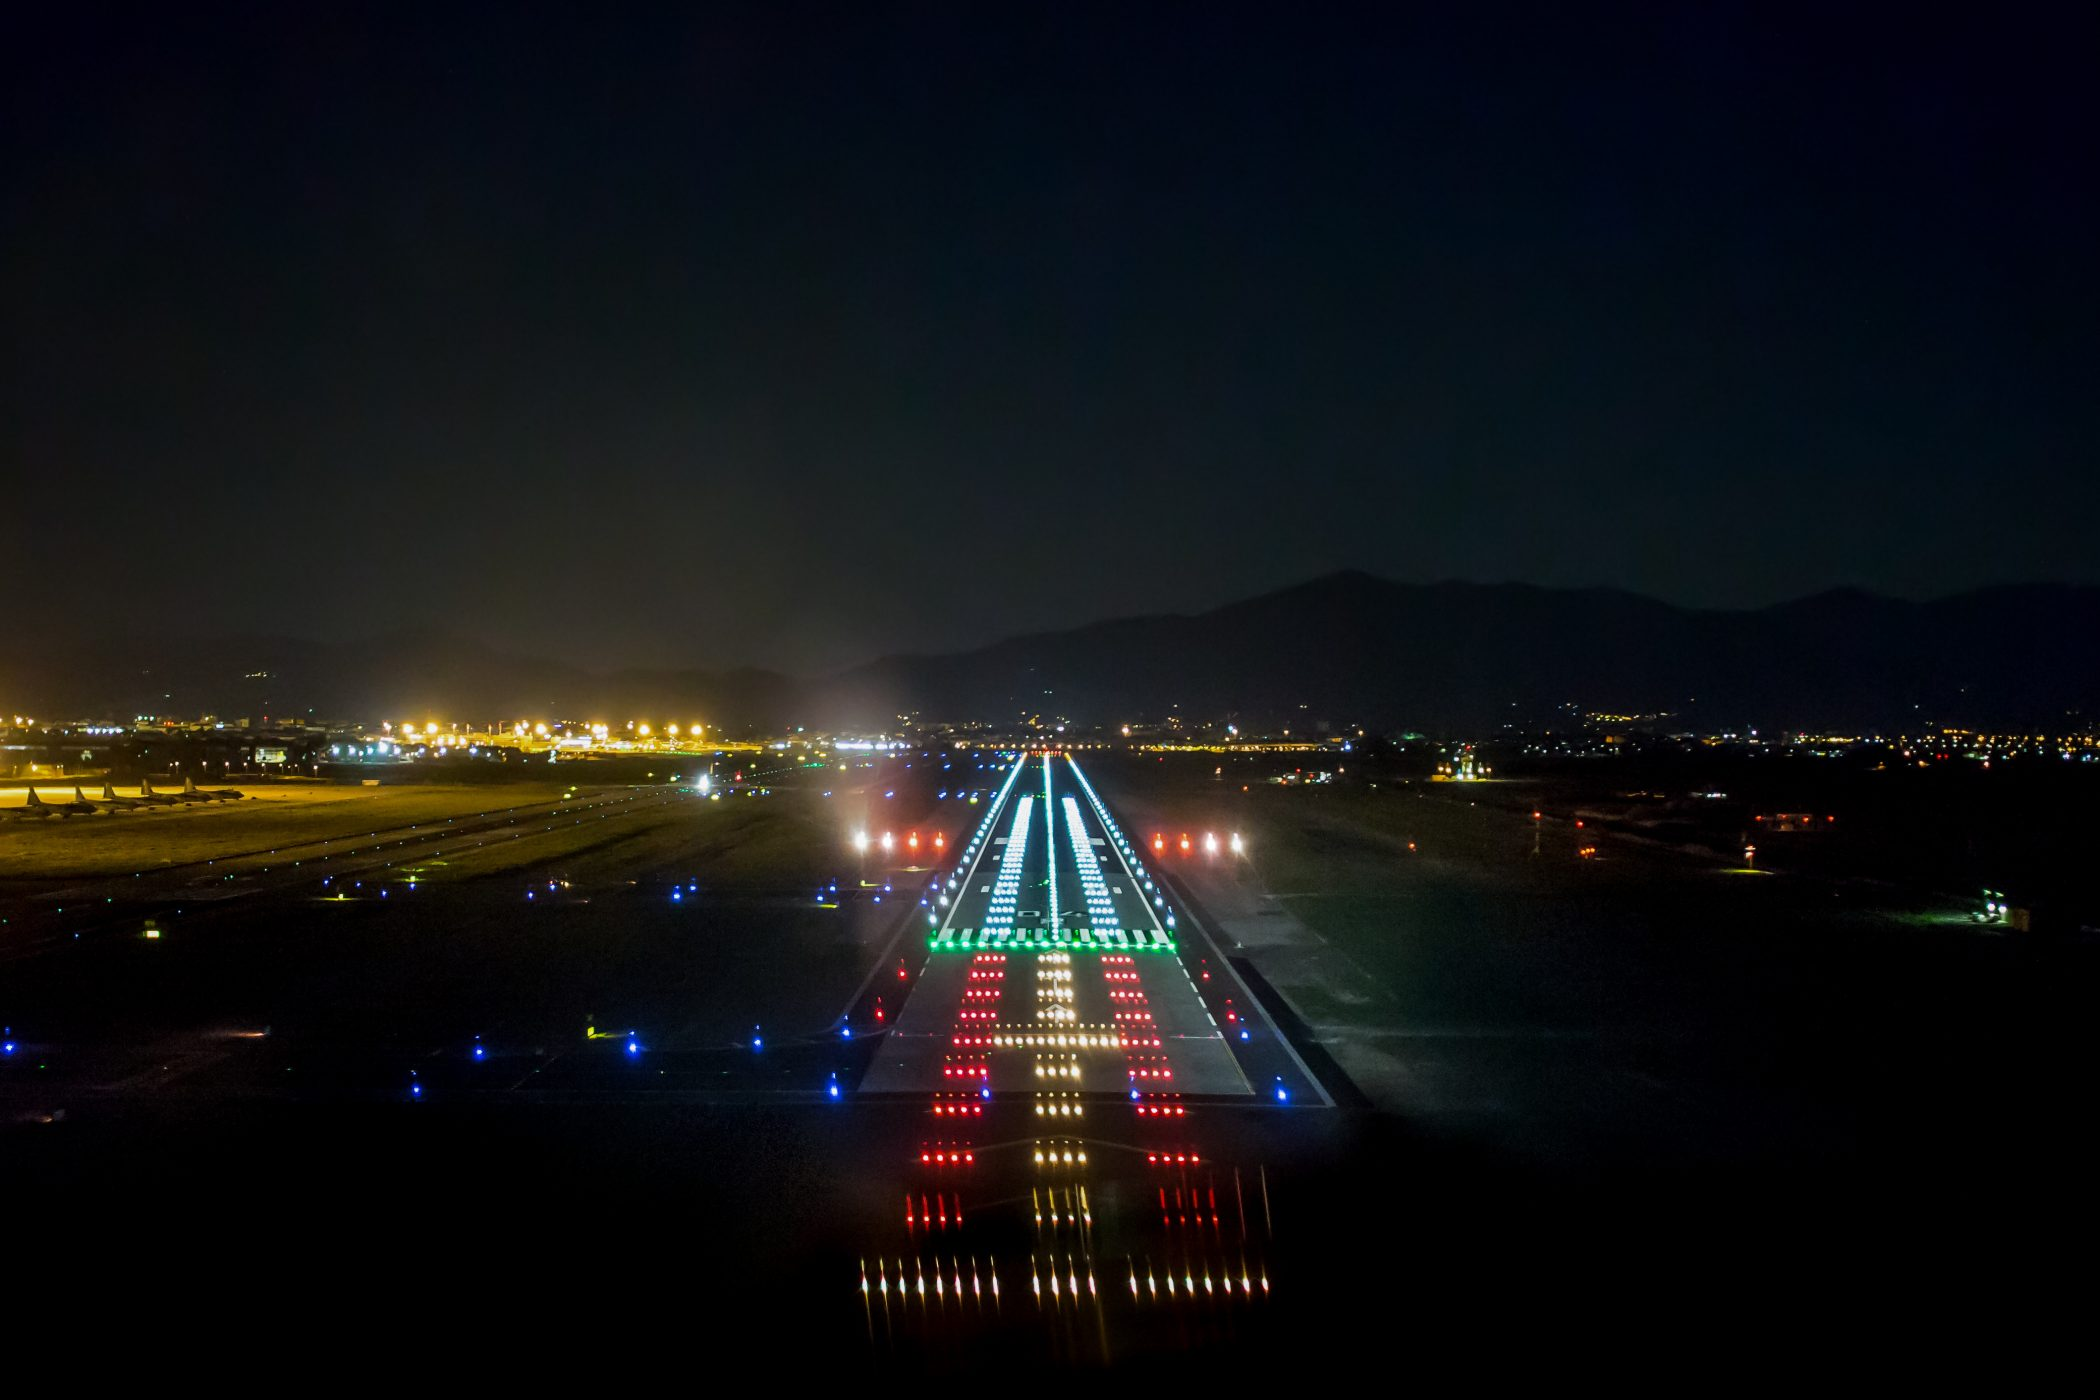 SERIES 3 LED PAPI: ANOTHER CHOICE IN GLIDESLOPE GUIDANCE